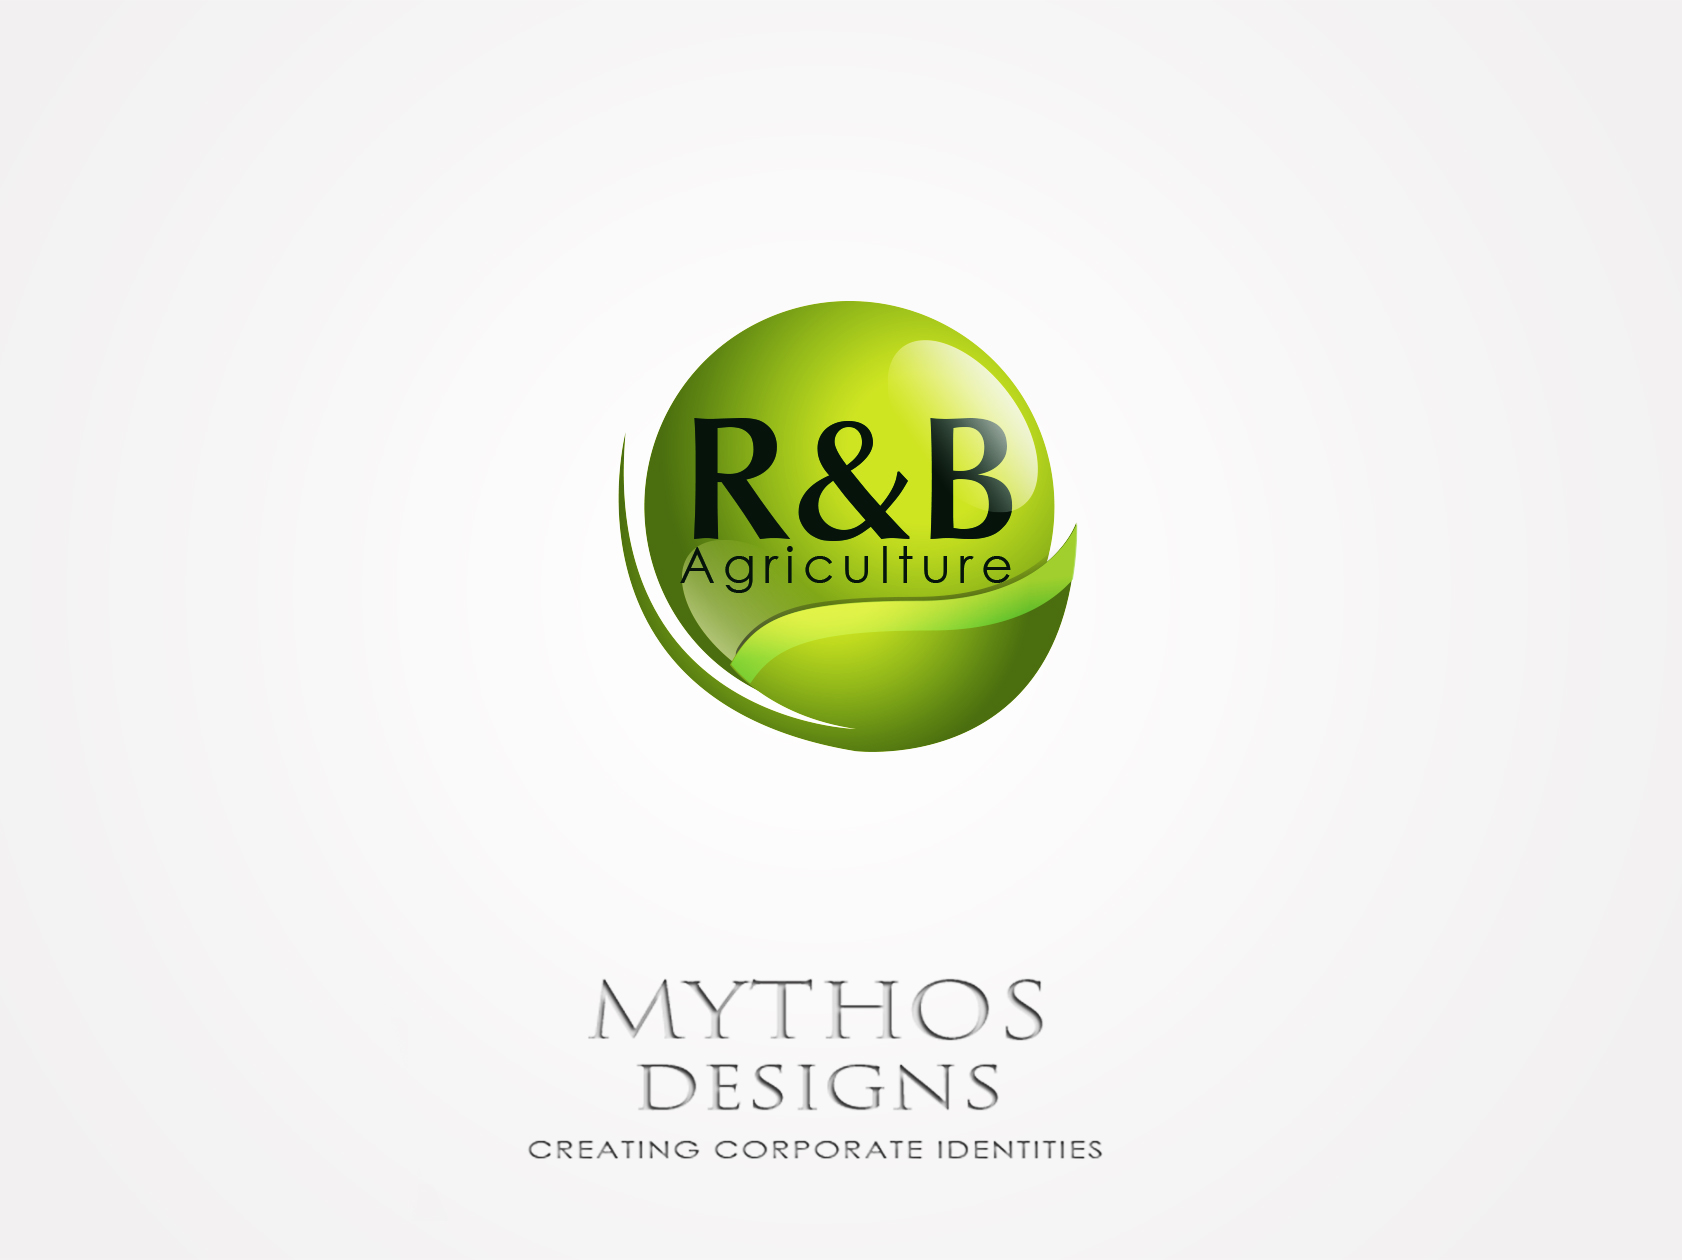 Logo Design by Mythos Designs - Entry No. 90 in the Logo Design Contest Captivating Logo Design for R & B Agriculture.